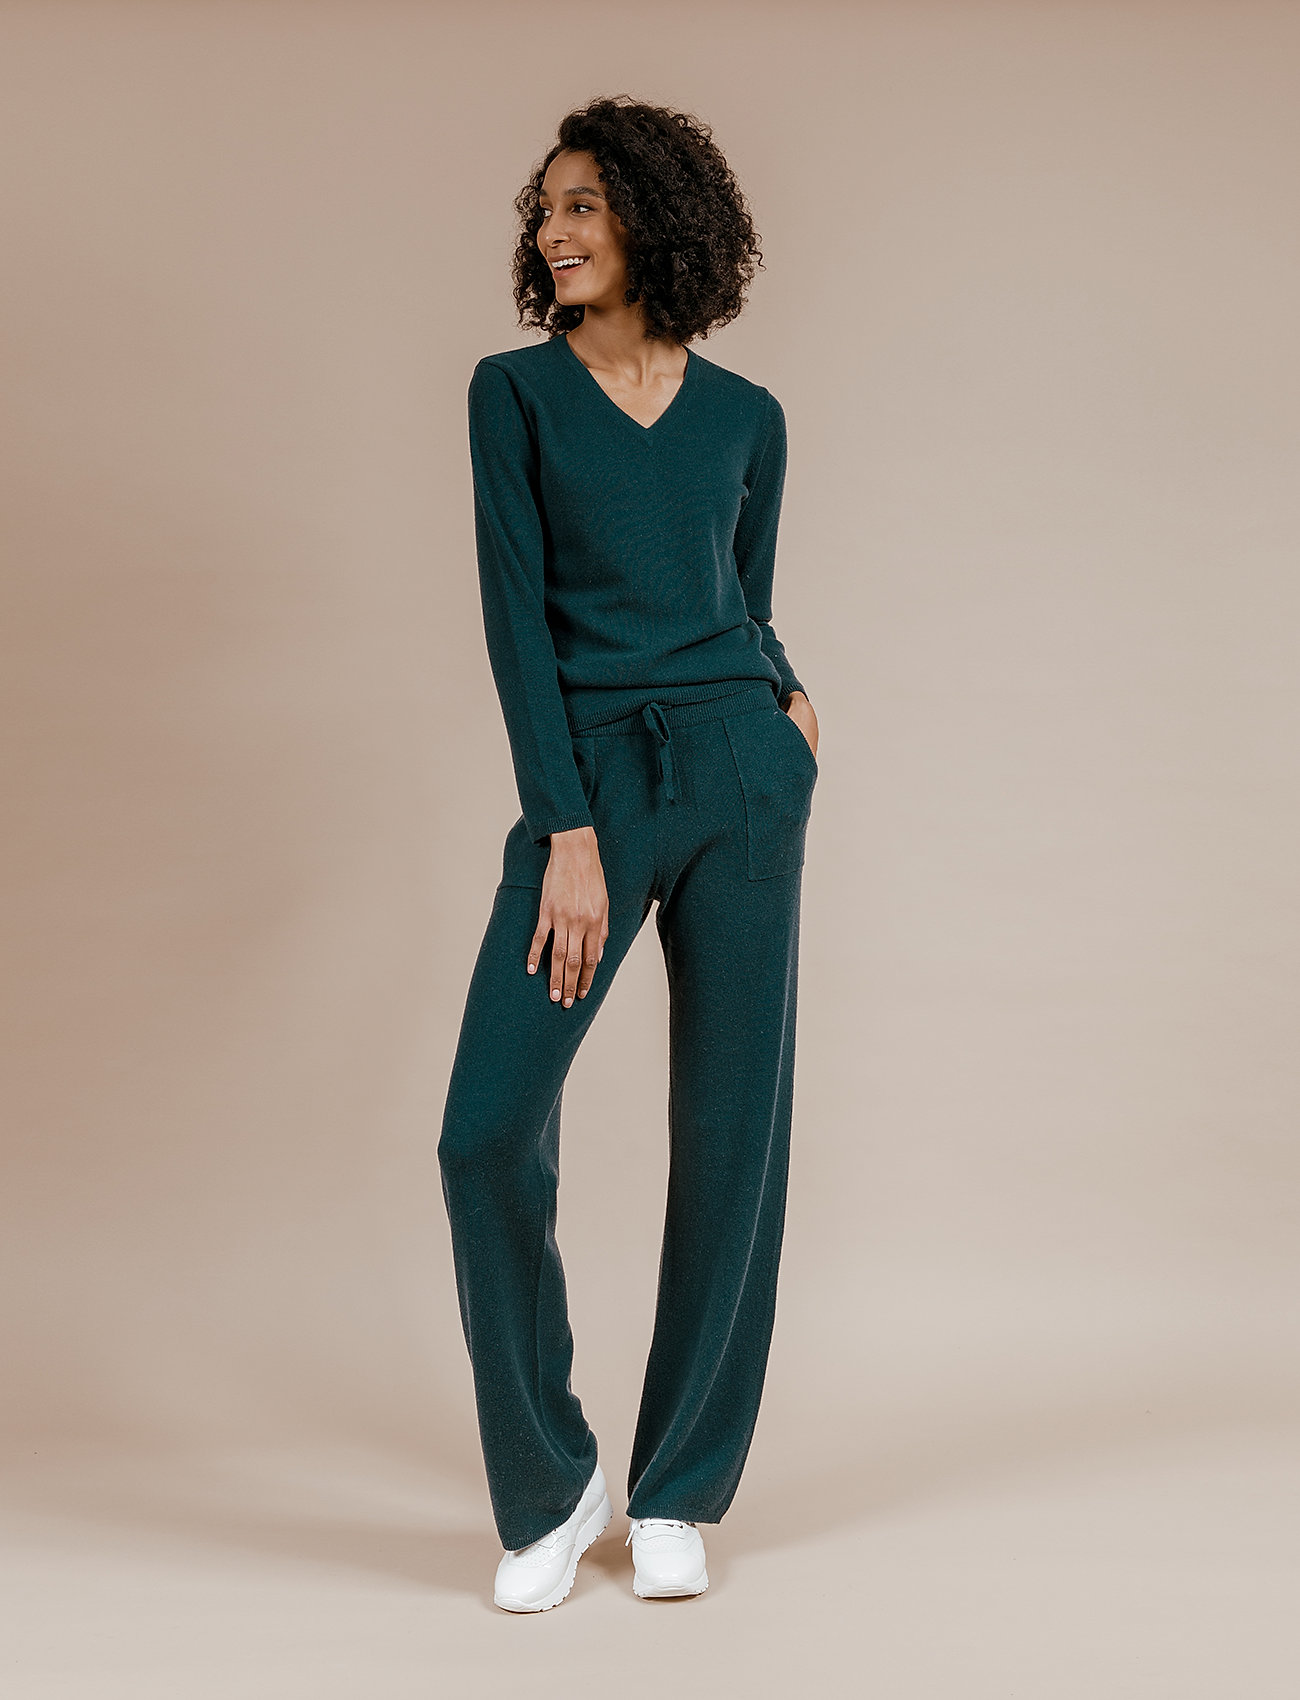 Andiata - Christie knit joggers - sweatpants - teal green - 0